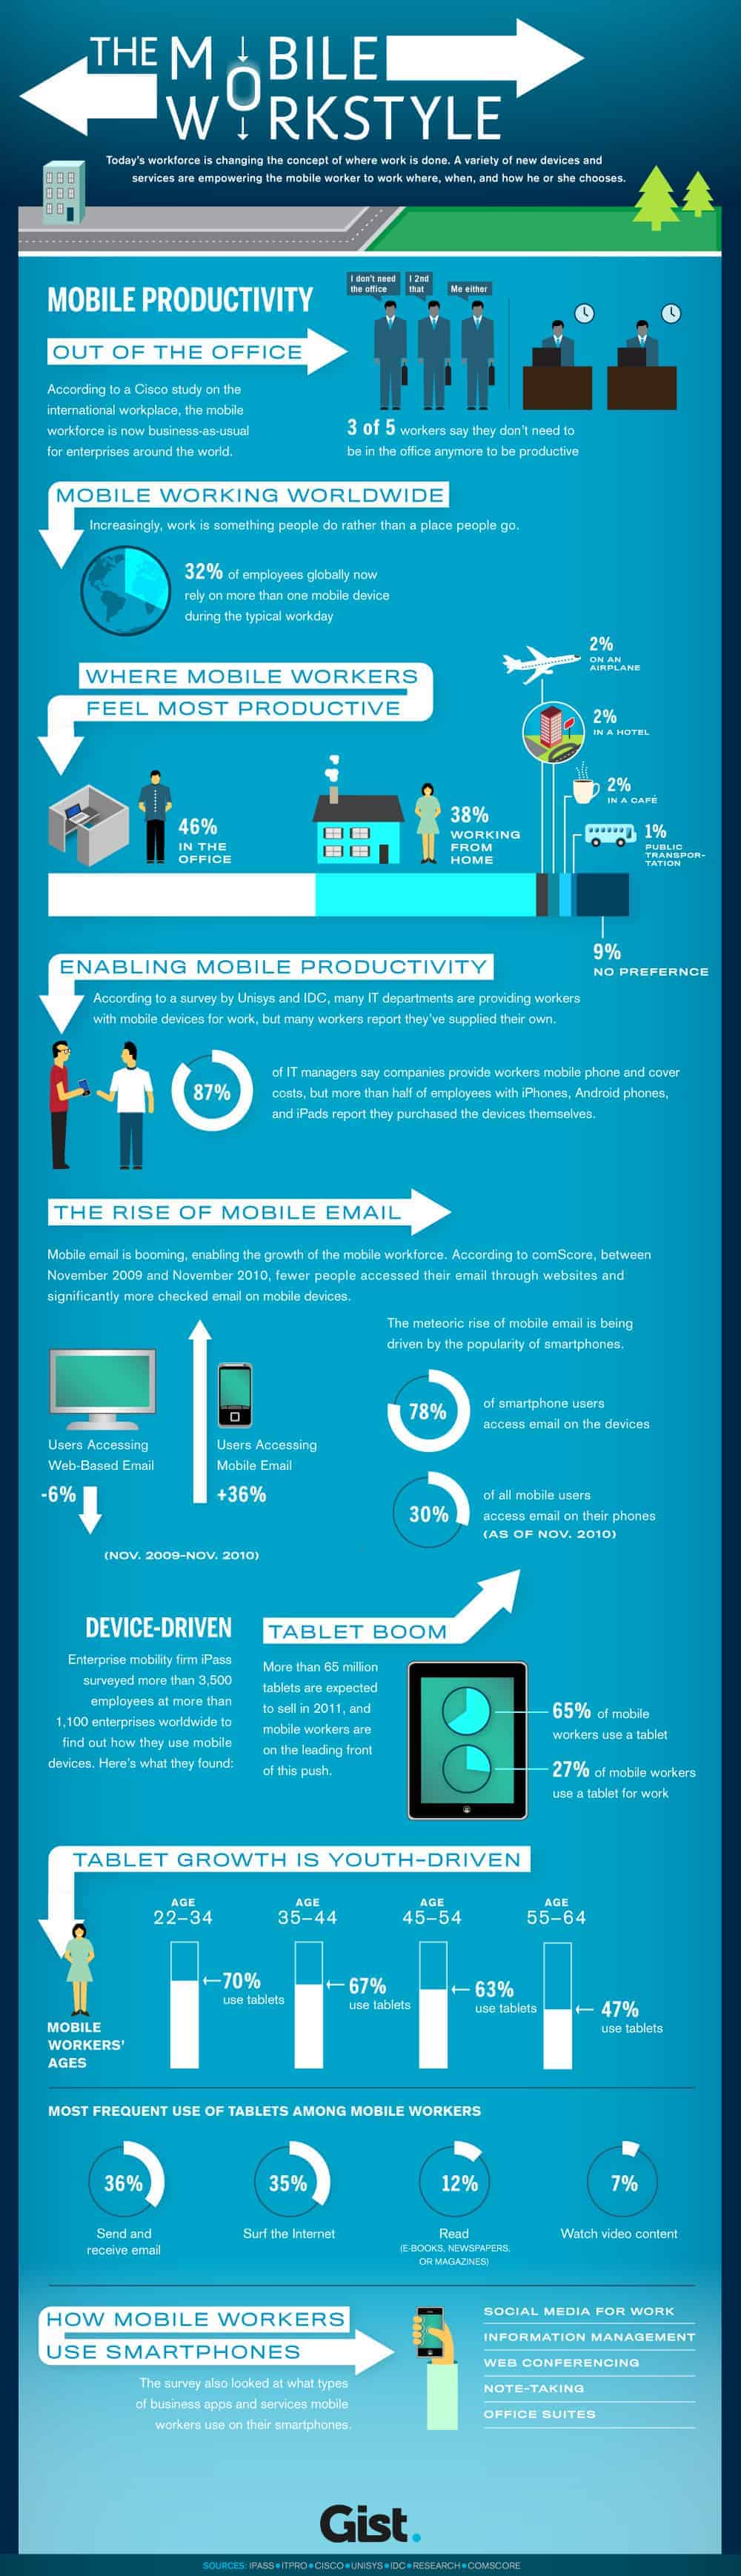 why mobile work style